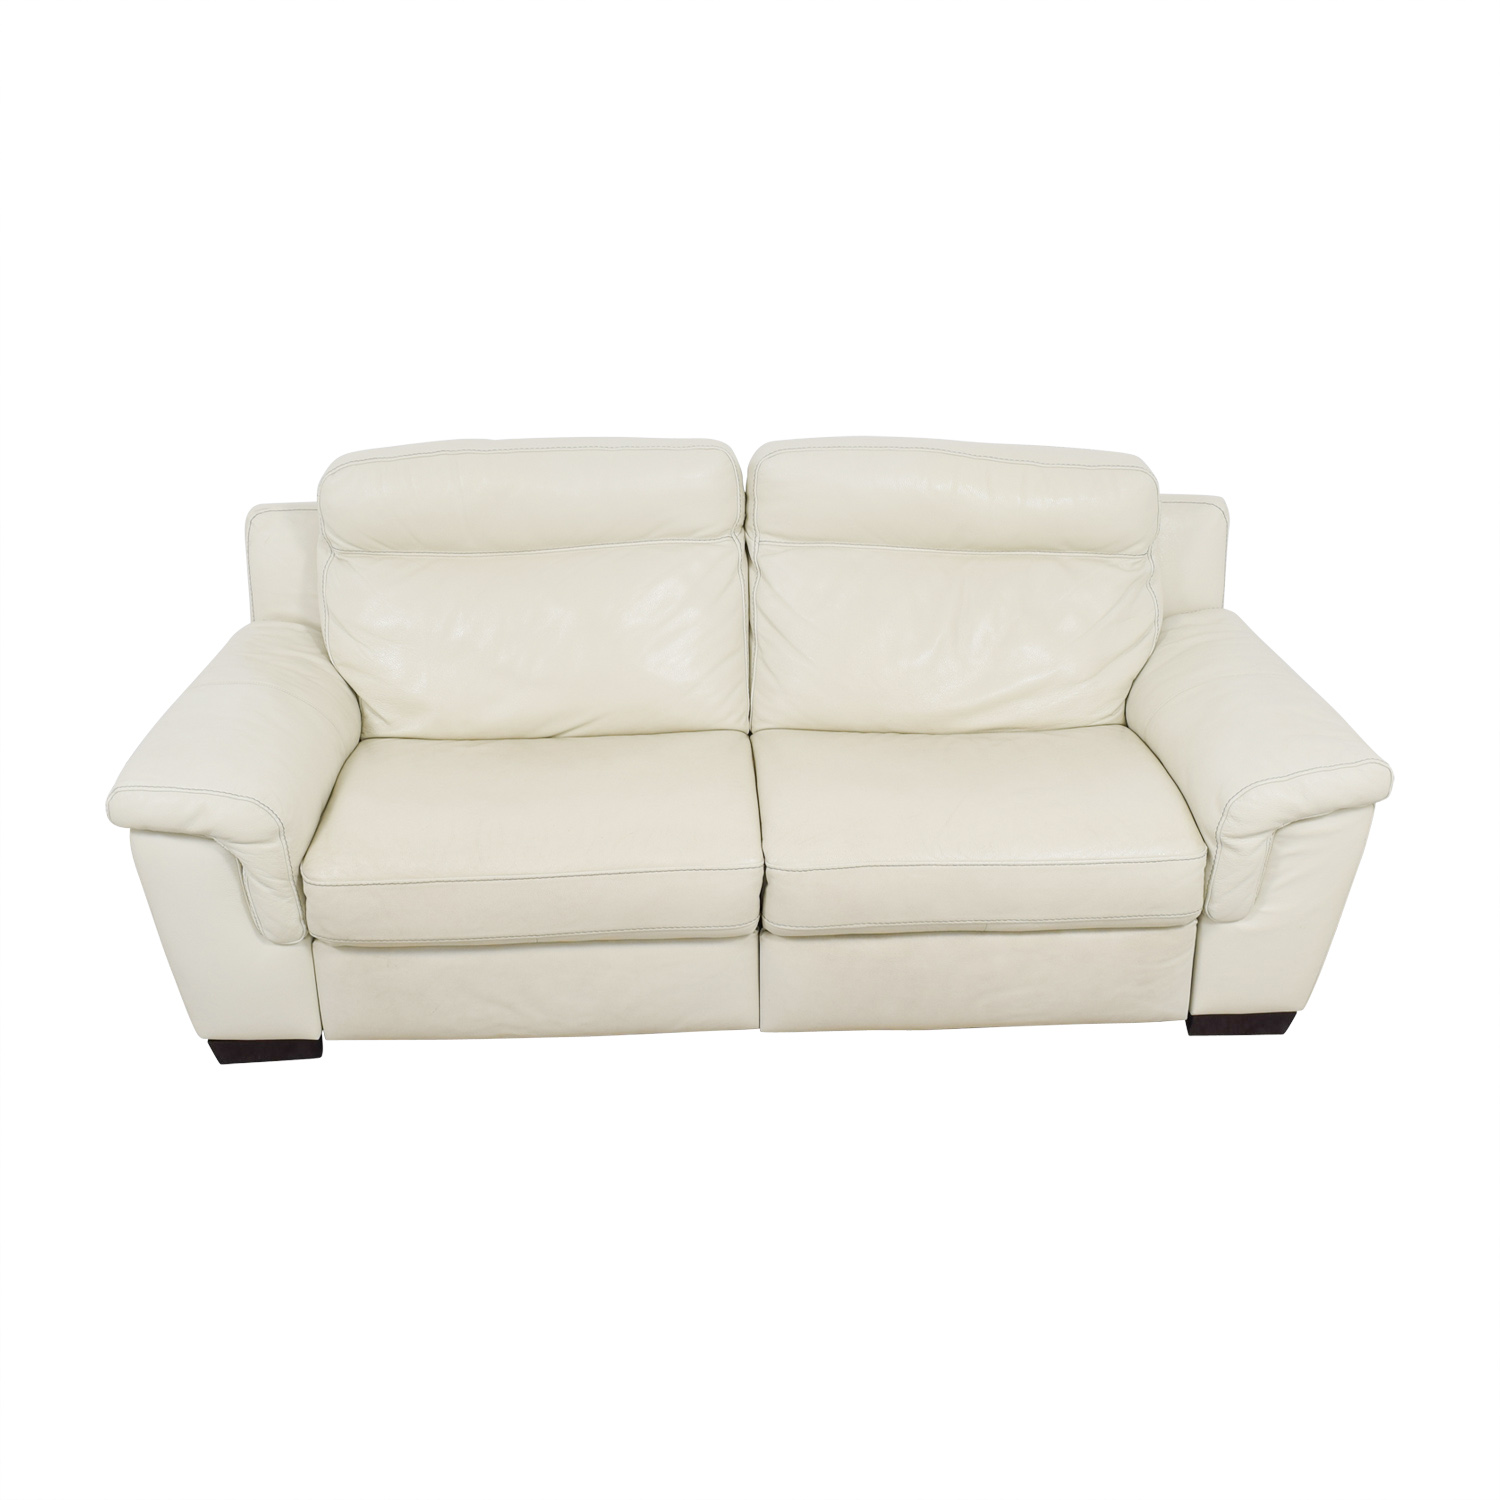 Macy S Off White Leather Recliner Sofa Recliners